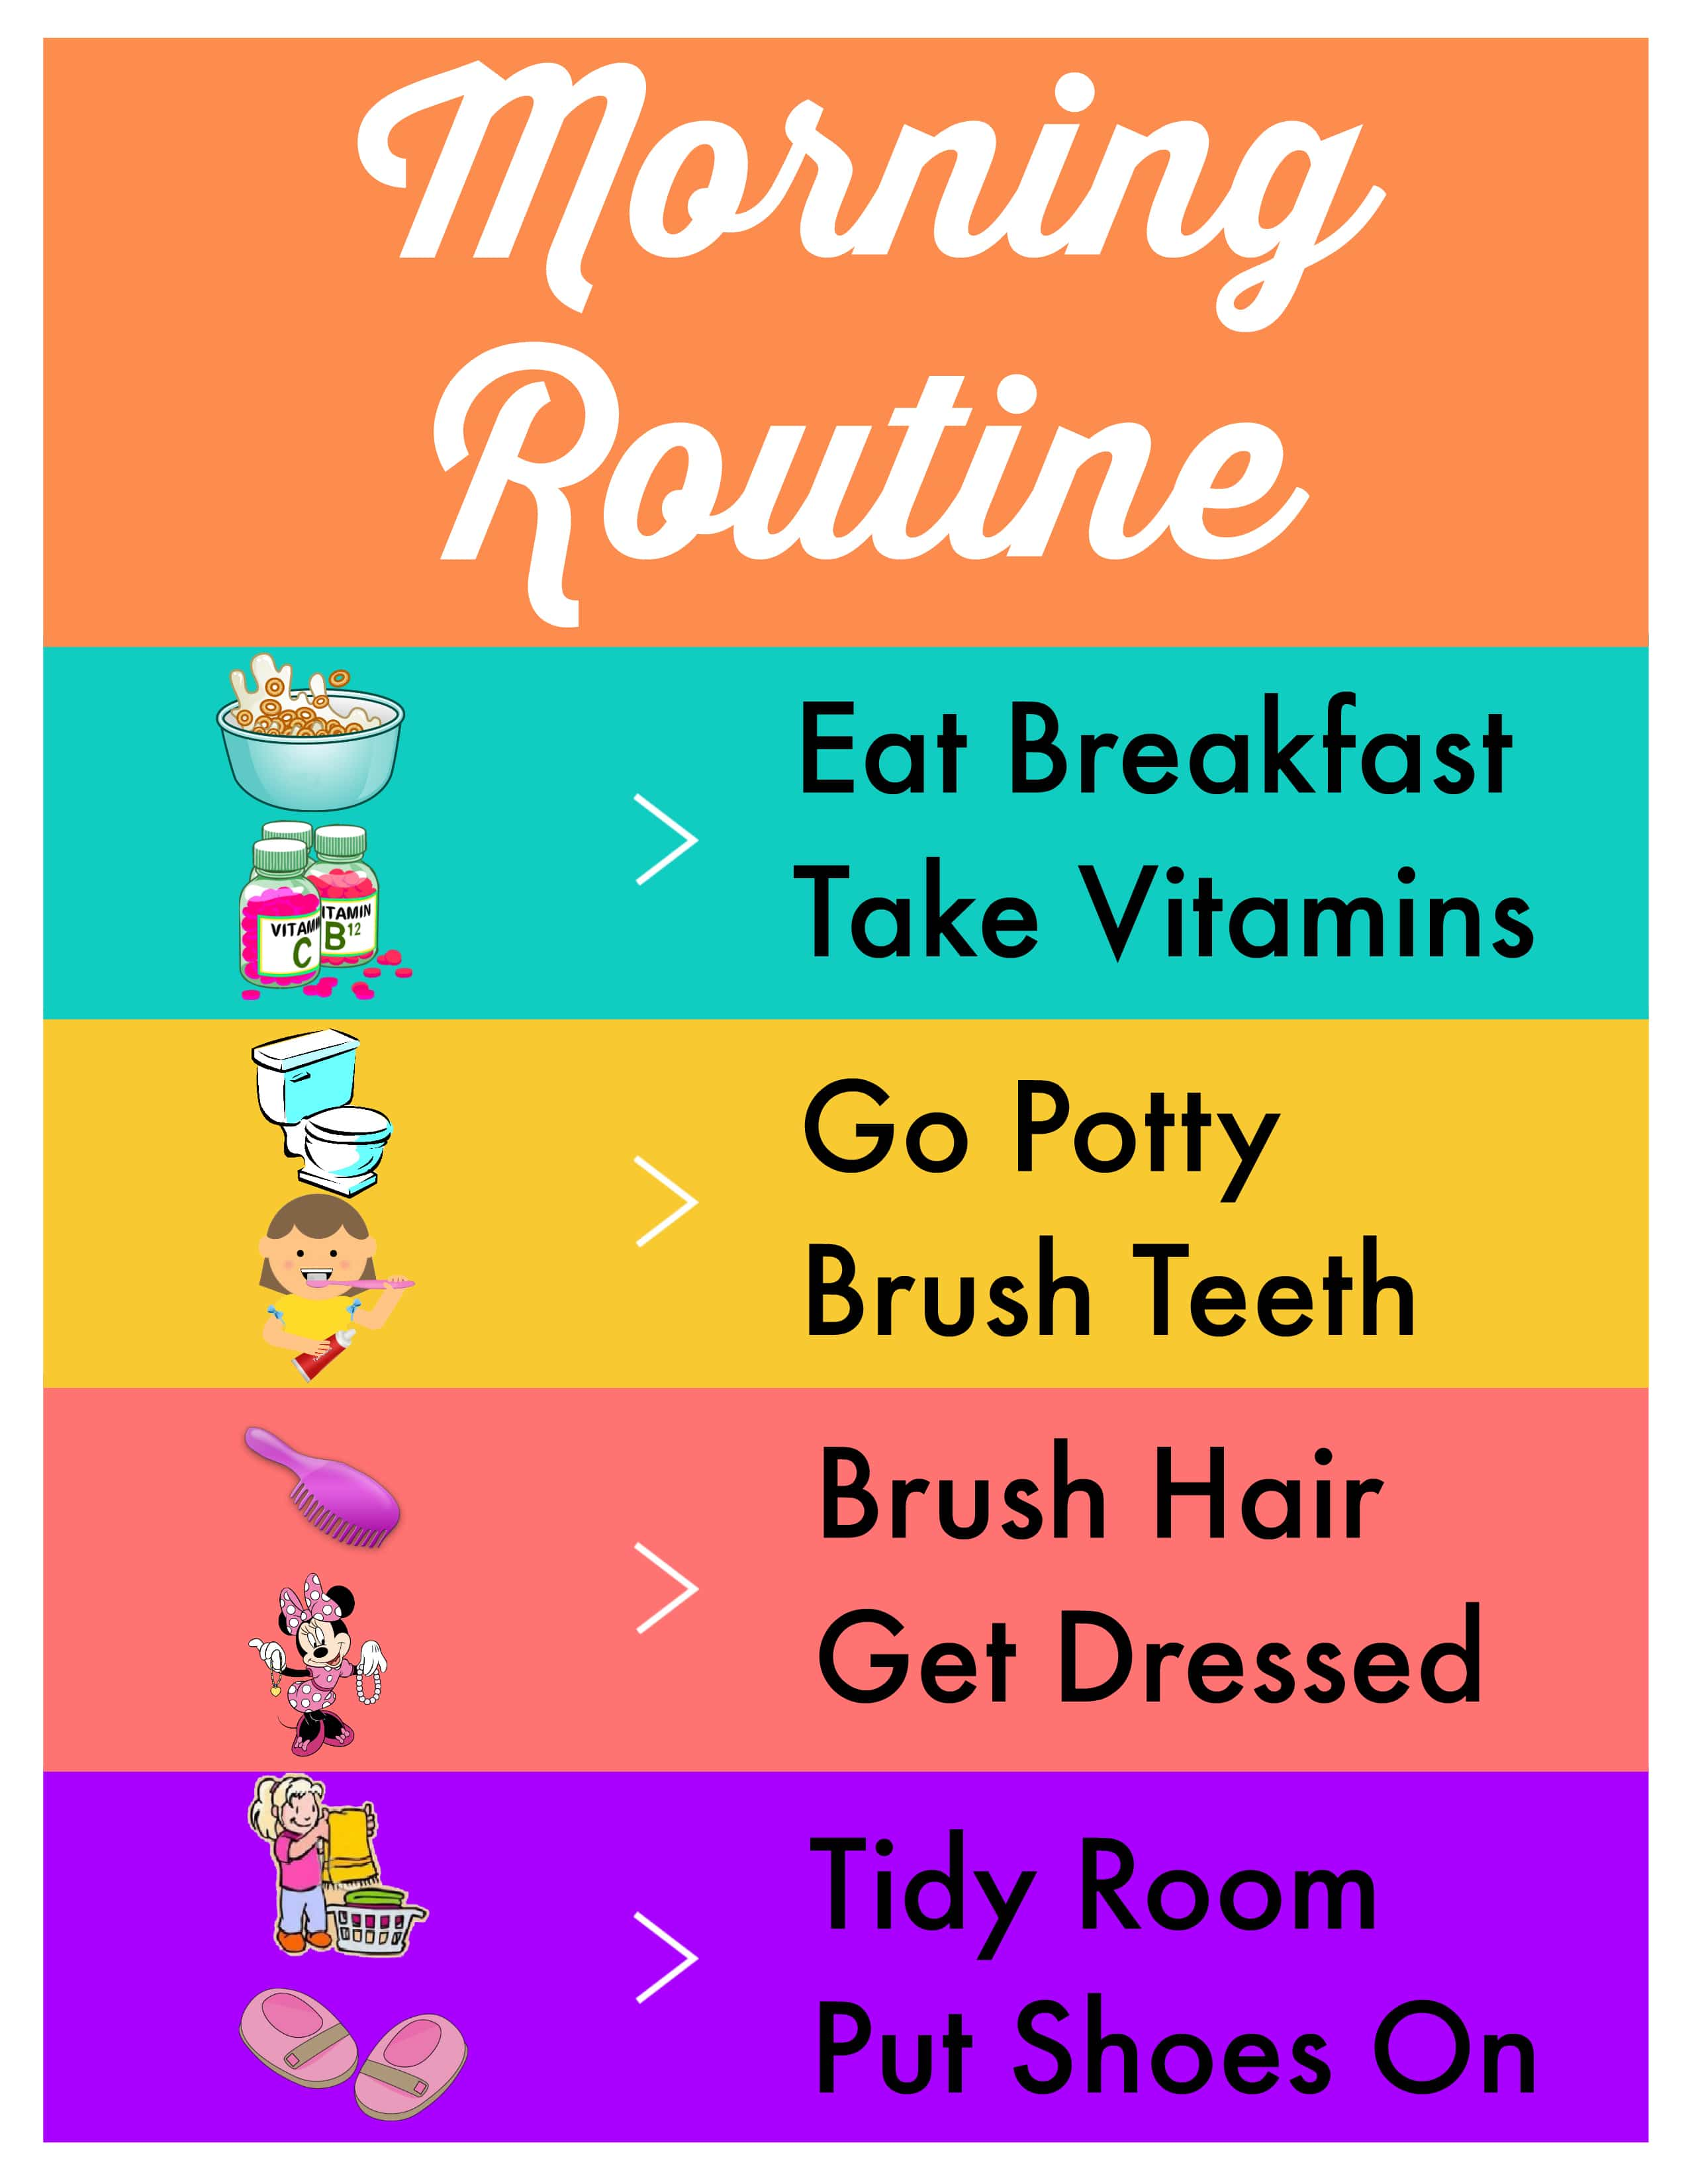 Our Morning Routine + Free Printable - www.refashionablylate.com